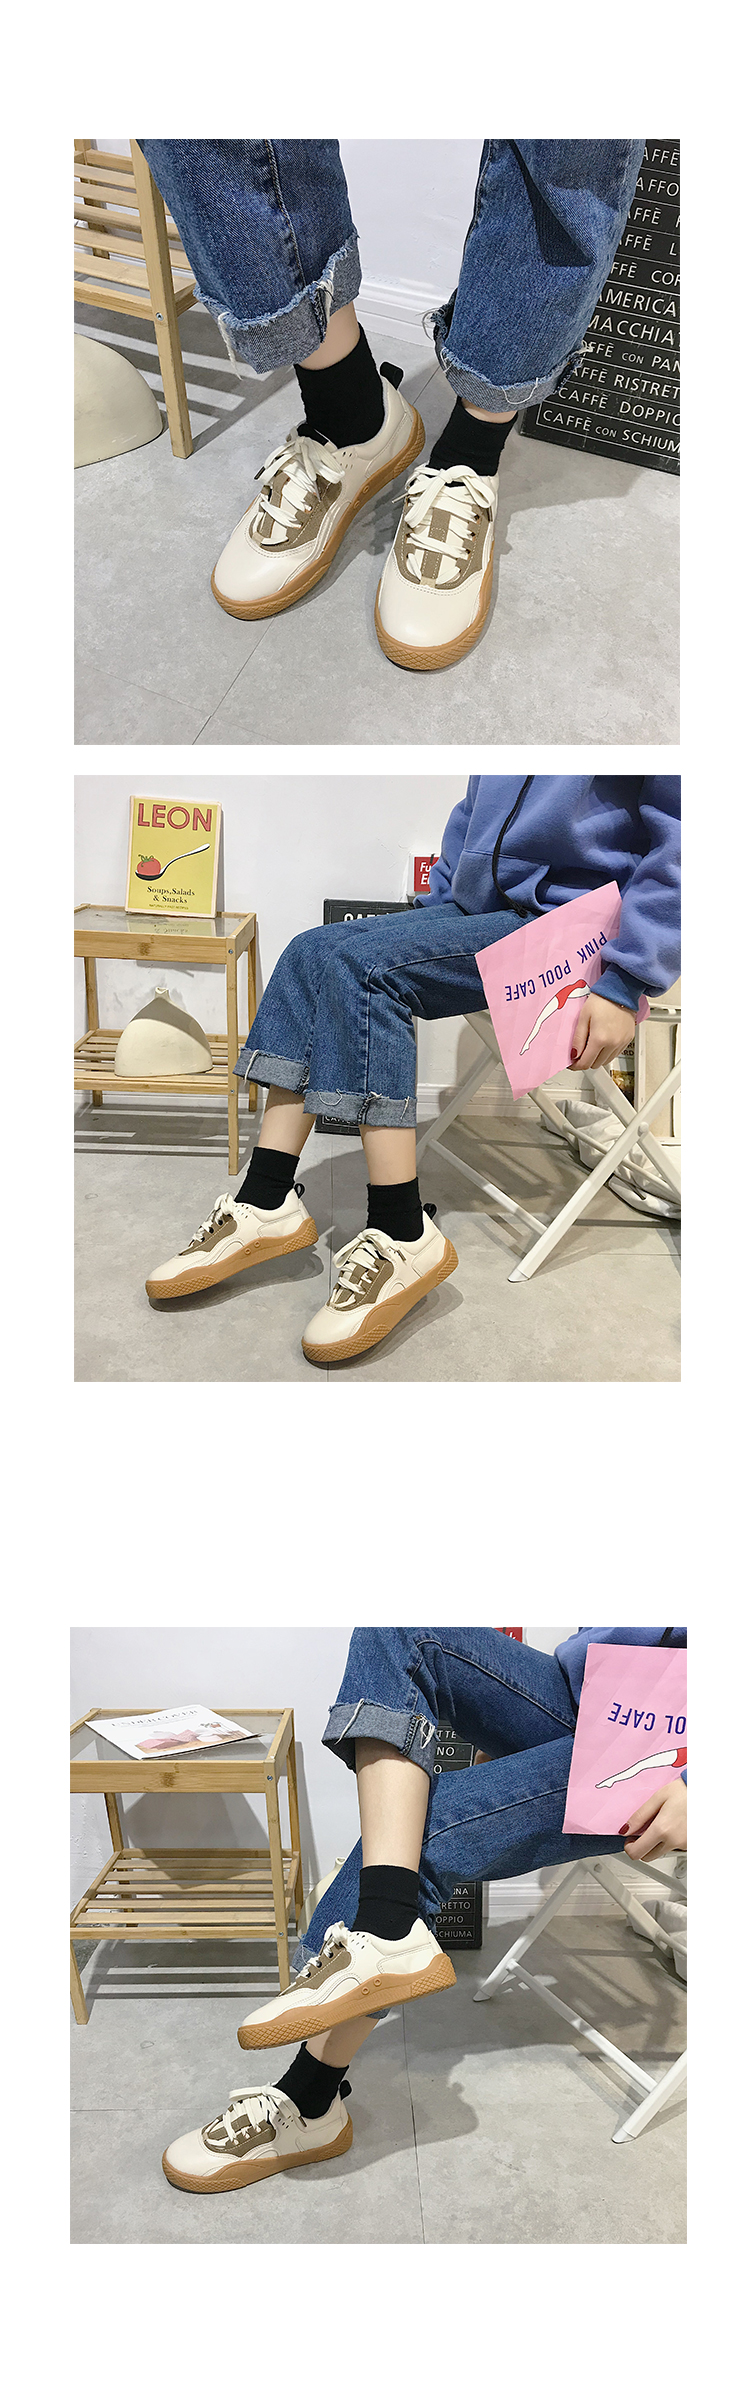 2019 Women Sneakers Leather Hook Loop All Match Female Casual Shoes Concise Style Lady White Shoes Students New Fashion 35-39 26